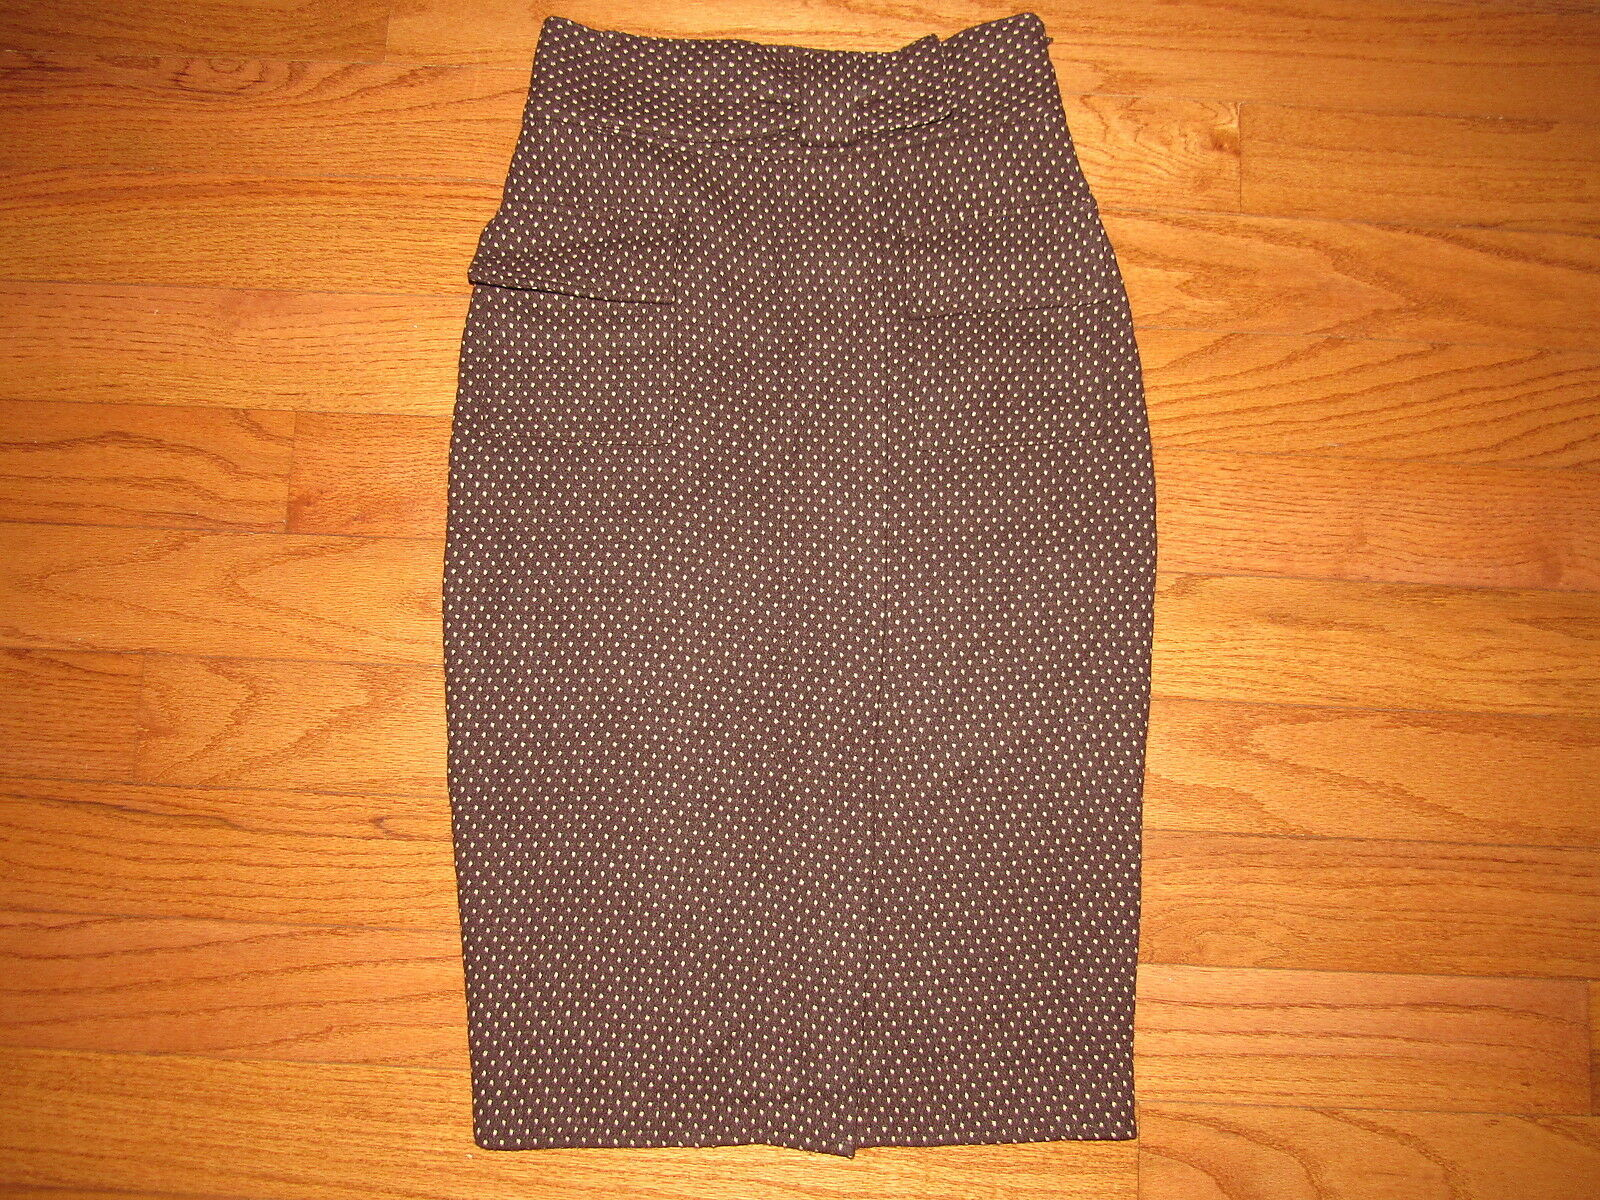 Diane von Furstenberg Brown Polka Dot Marple Pencil Skirt 6